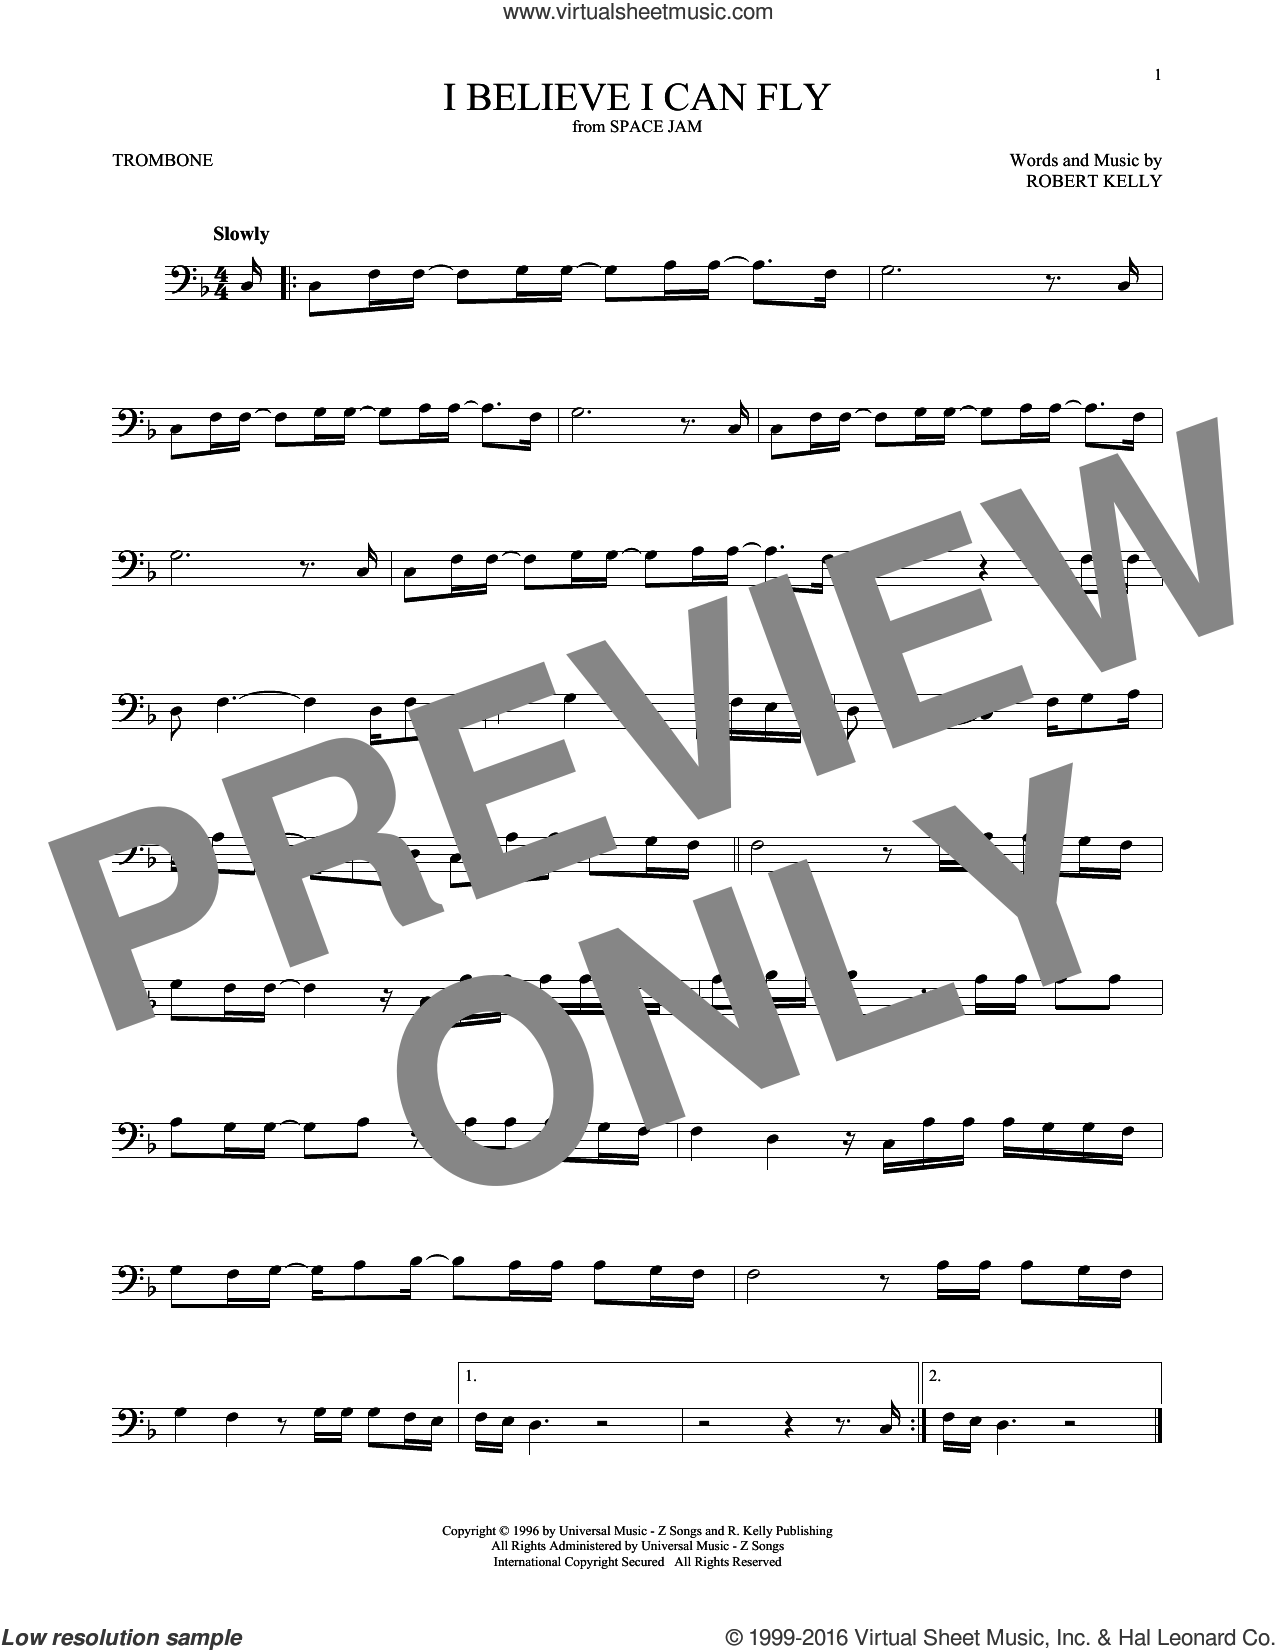 I Believe I Can Fly sheet music for trombone solo by Robert Kelly and Jermaine Paul, intermediate